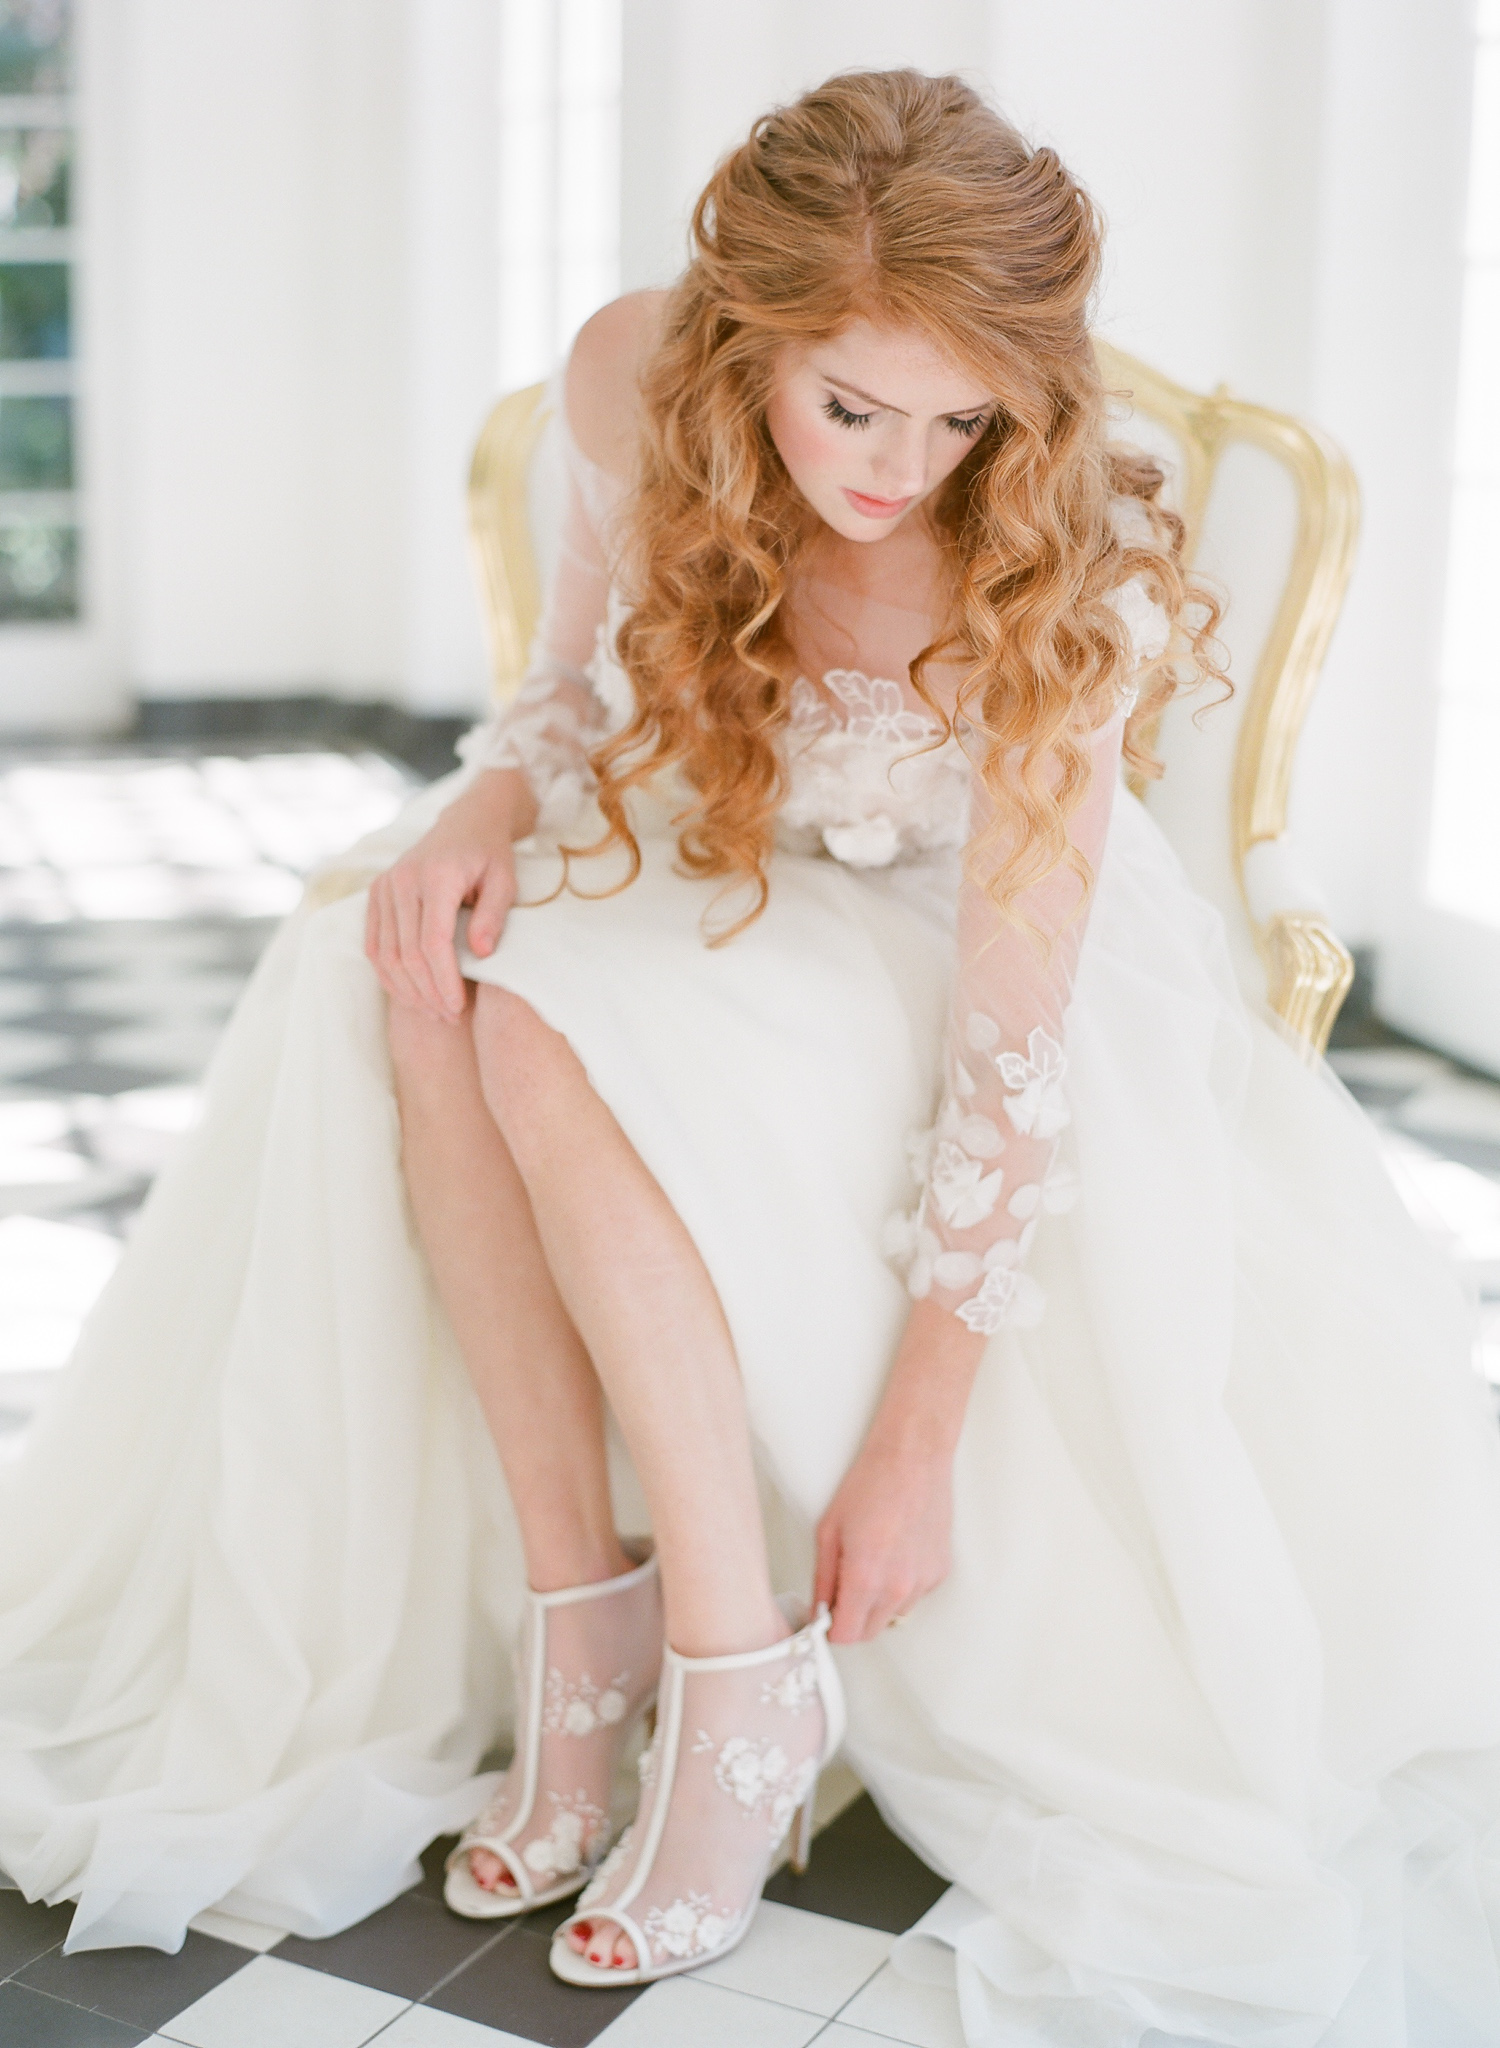 Bride-Wedding-Day-Shoes.jpg